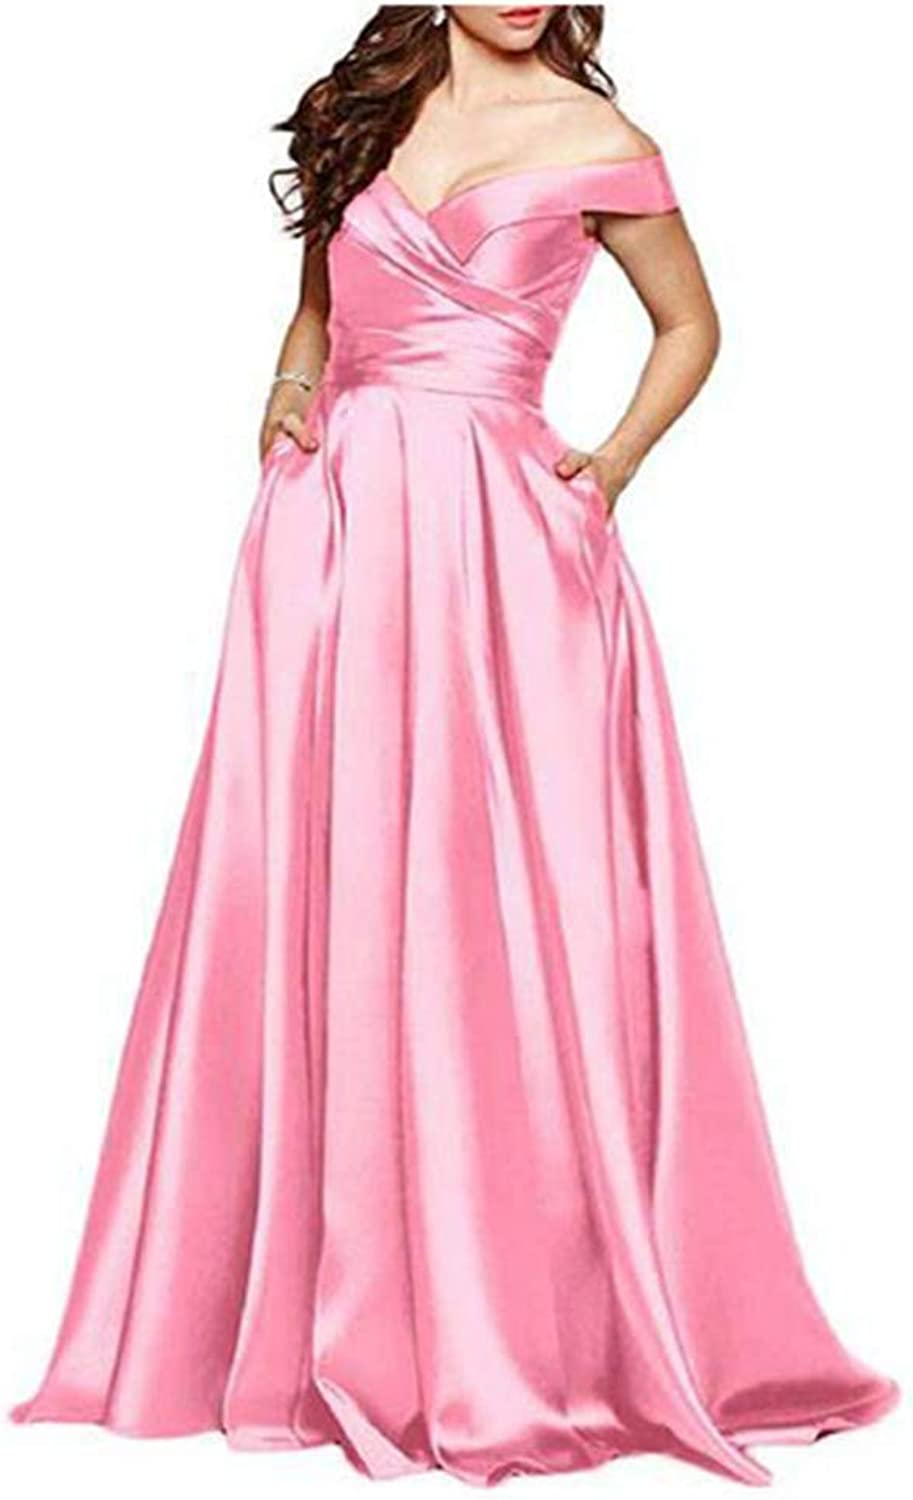 Aiyue Yishen Long Off Shoulder Evening Dress Satin Aline with Pocket Party Gowns Maxi